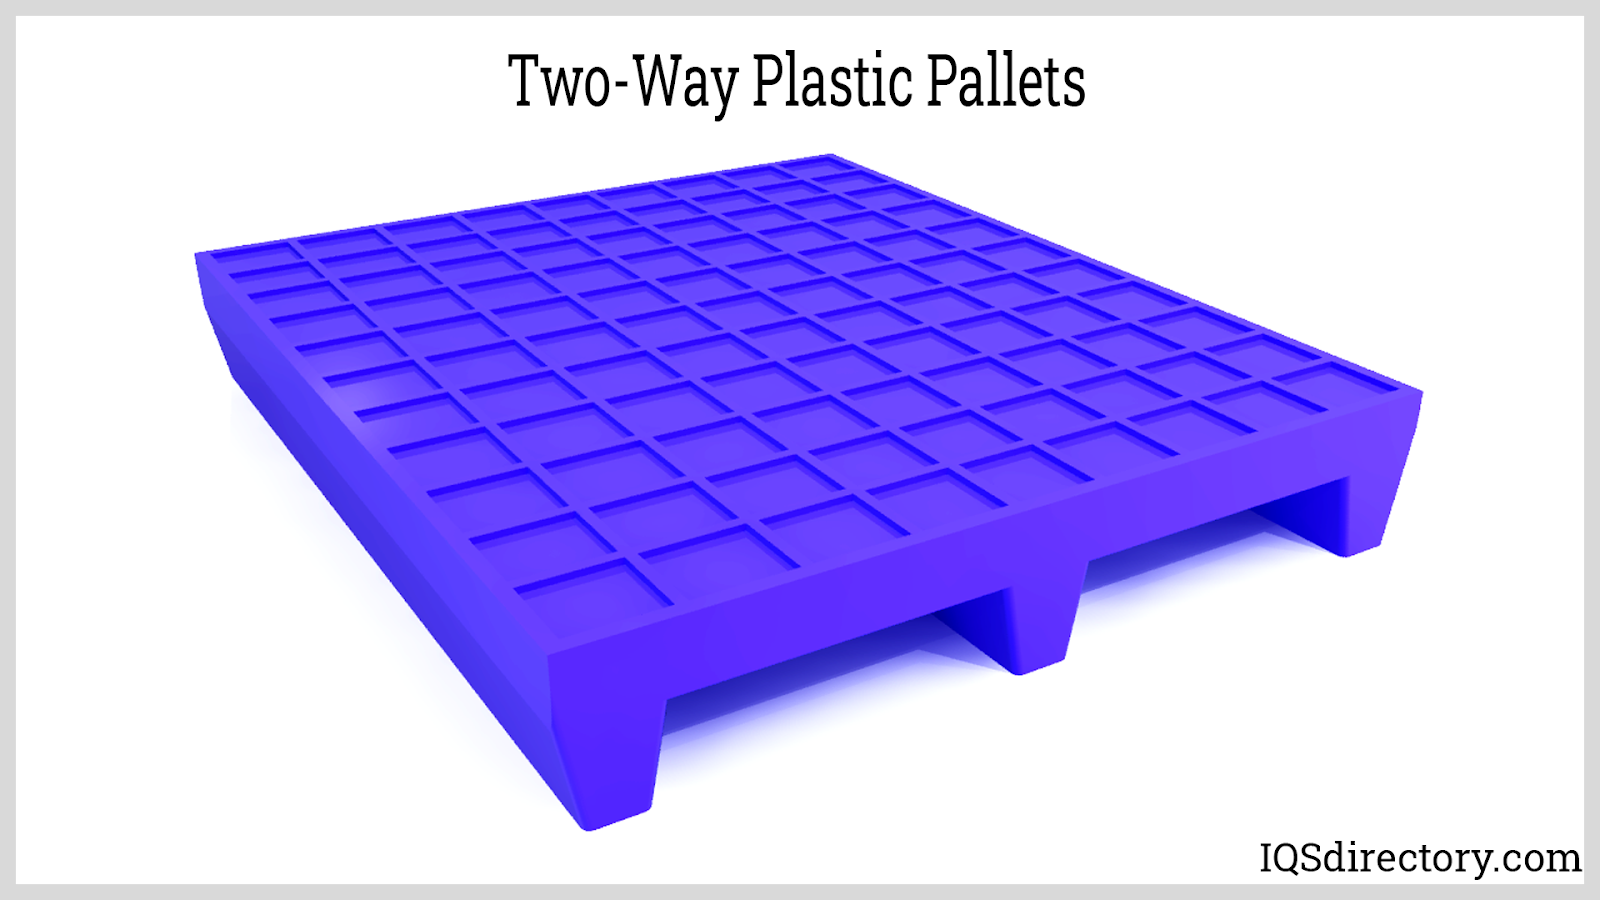 Two-Way Plastic Pallets